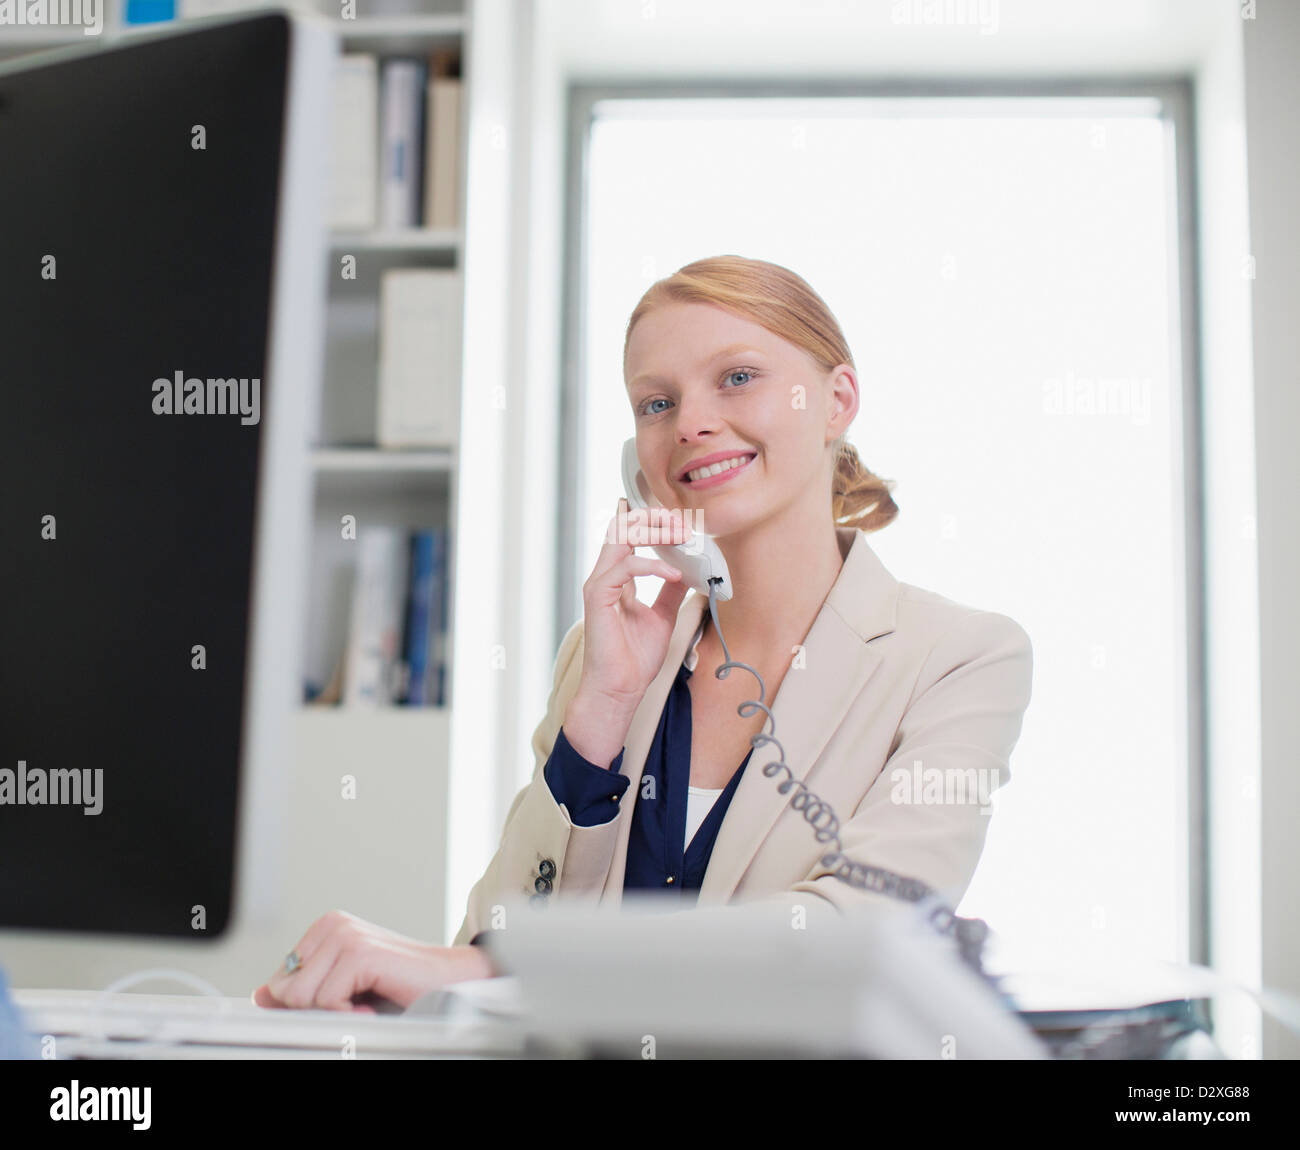 Portrait of confident businesswoman using computer and talking on telephone - Stock Image